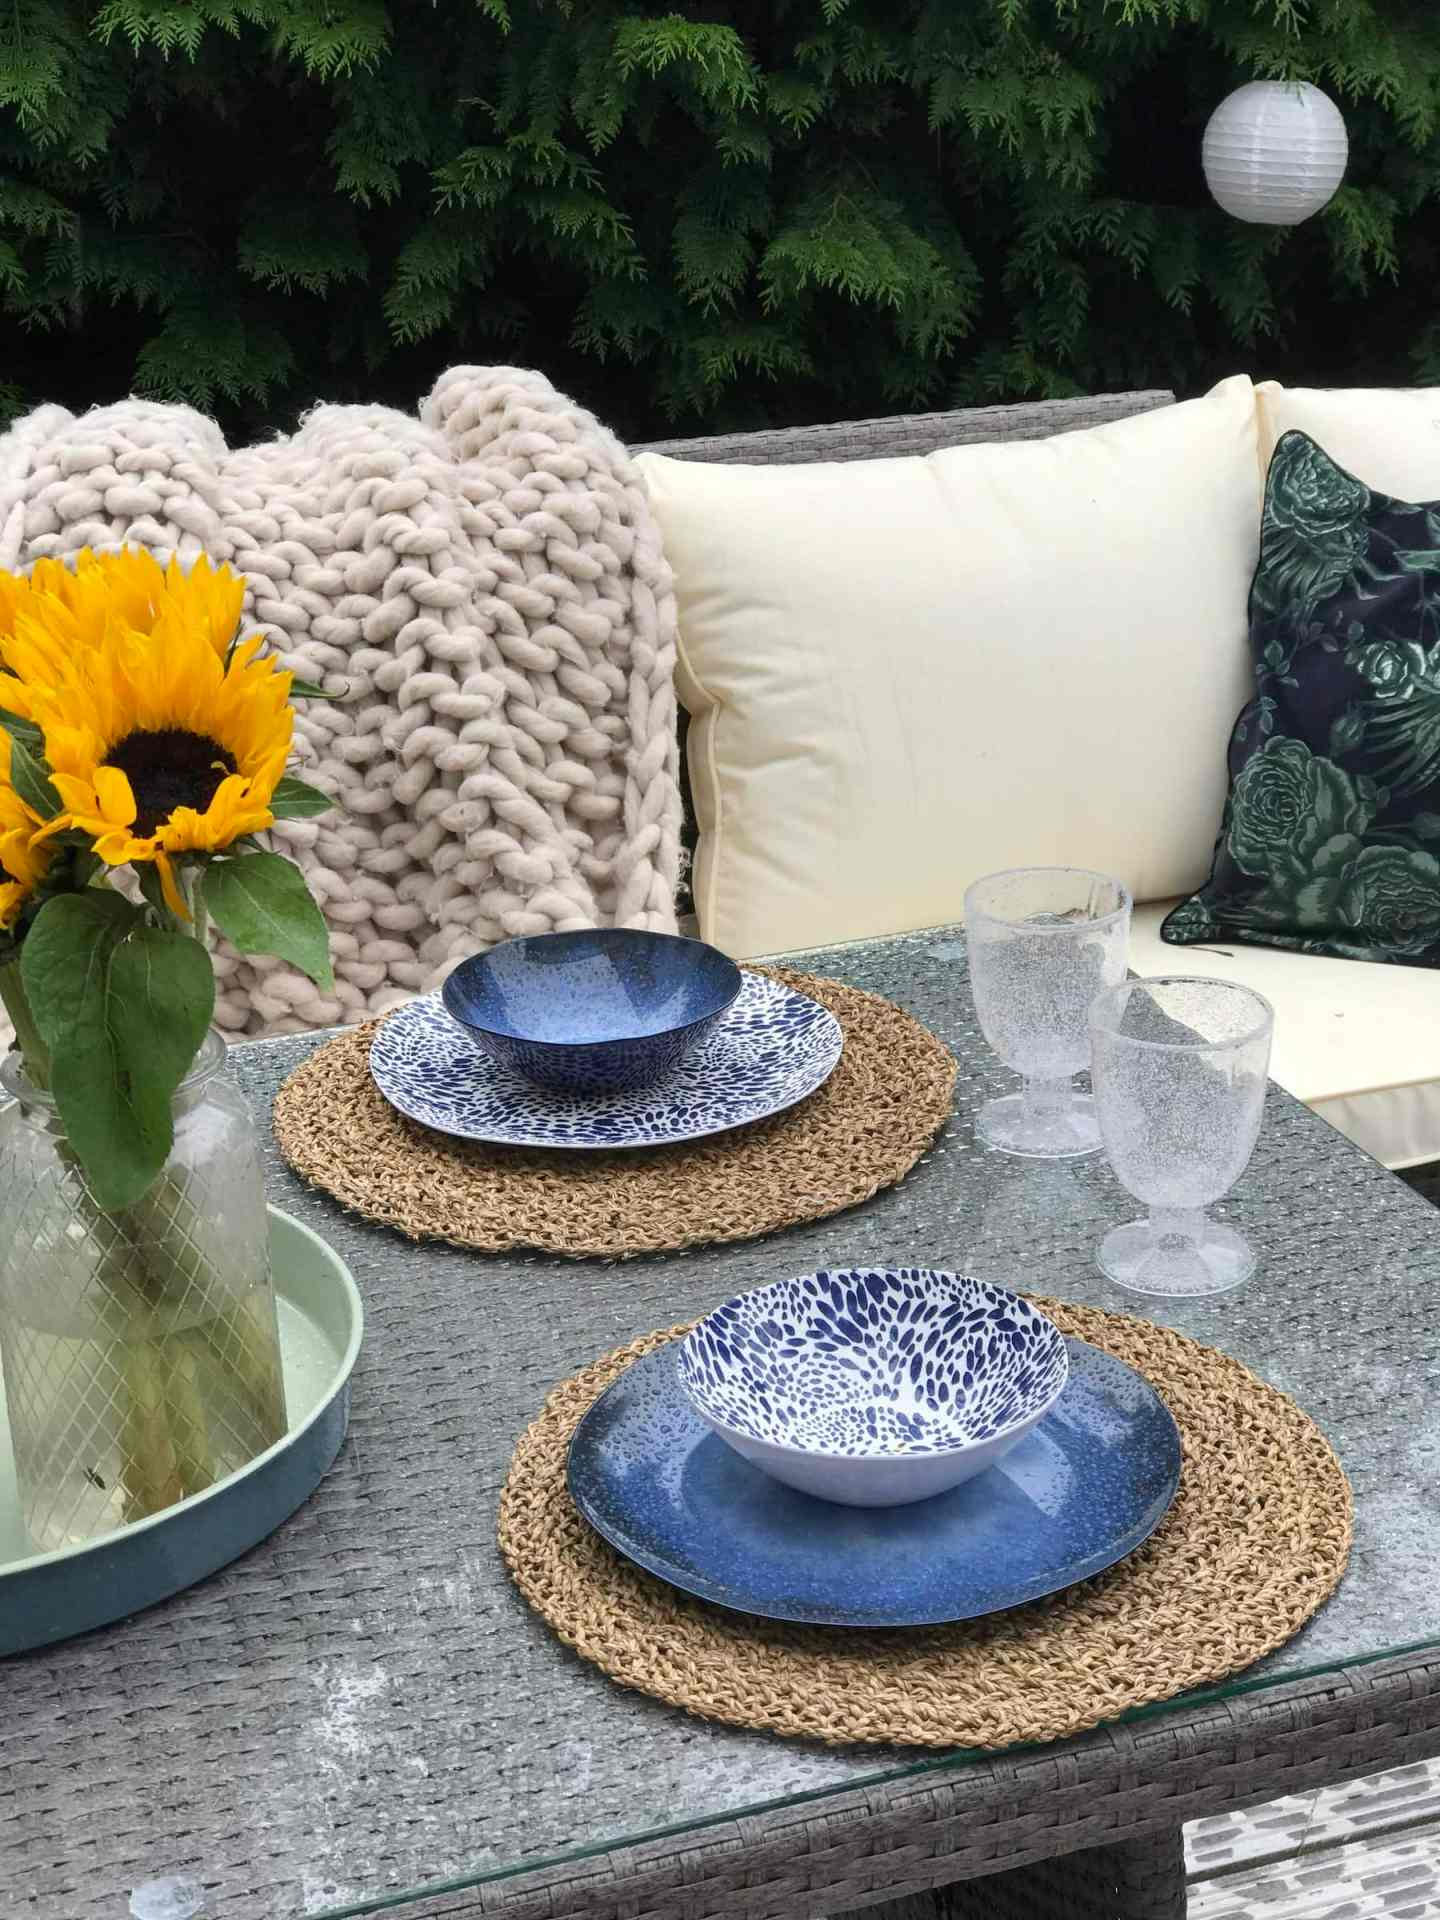 Dinner plates with matching bowls